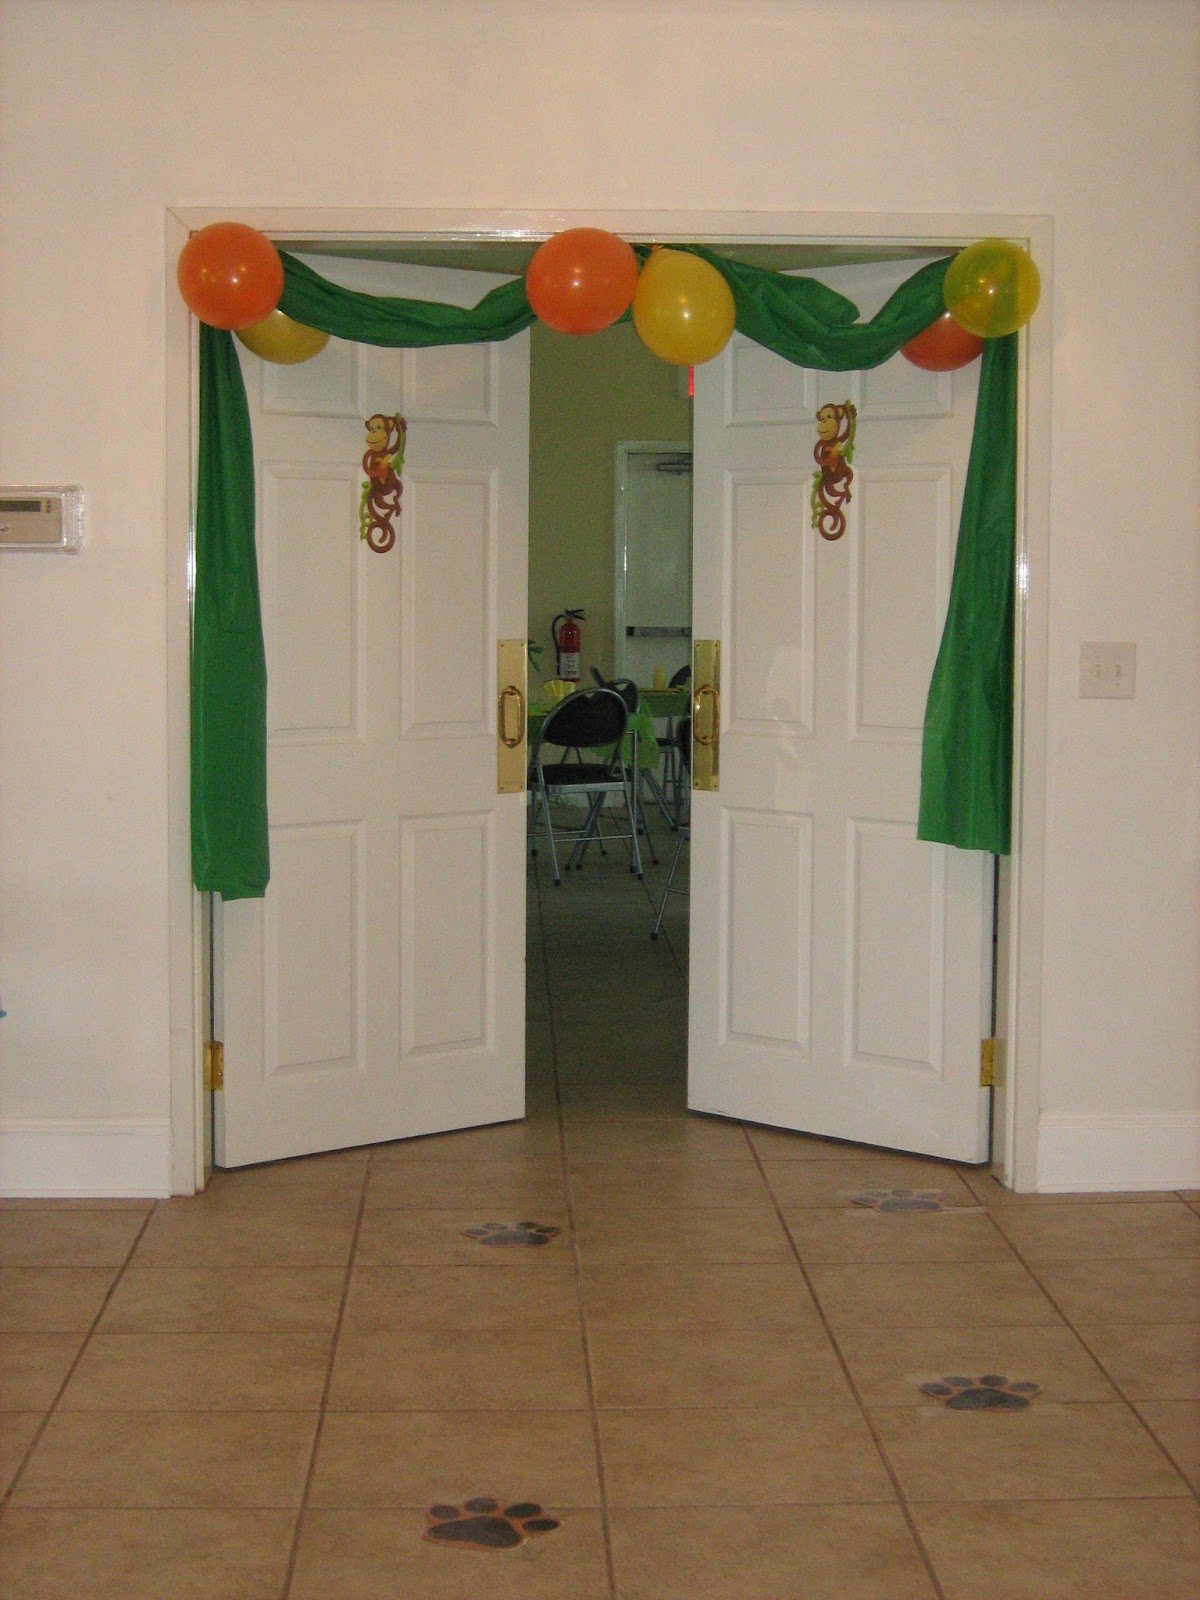 For the doorway, we used plastic table clothes and balloons. We were ...